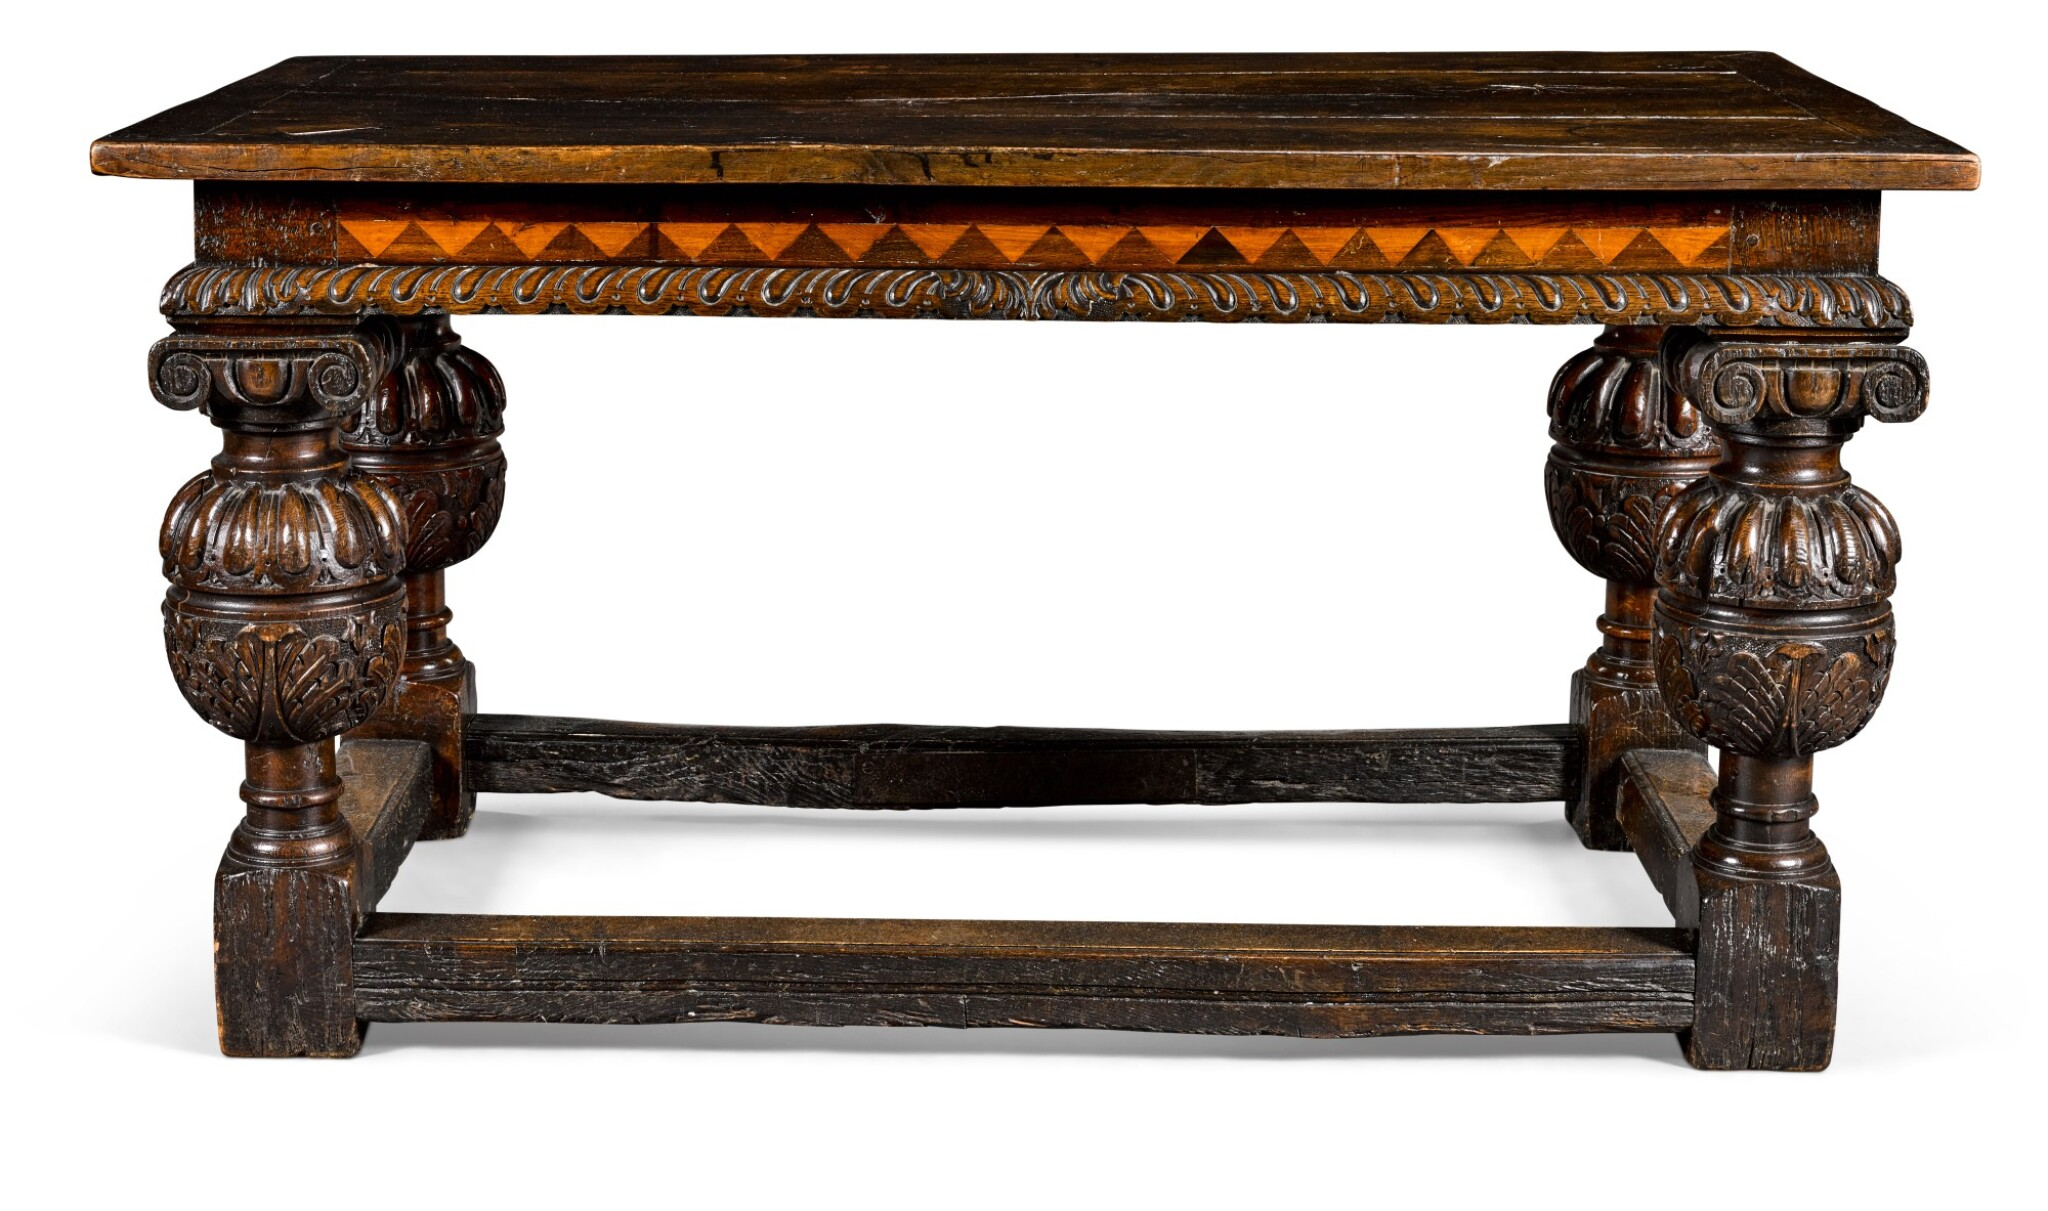 View 1 of Lot 22. An Elizabethan style oak centre table, 19th century incorporating earlier elements.